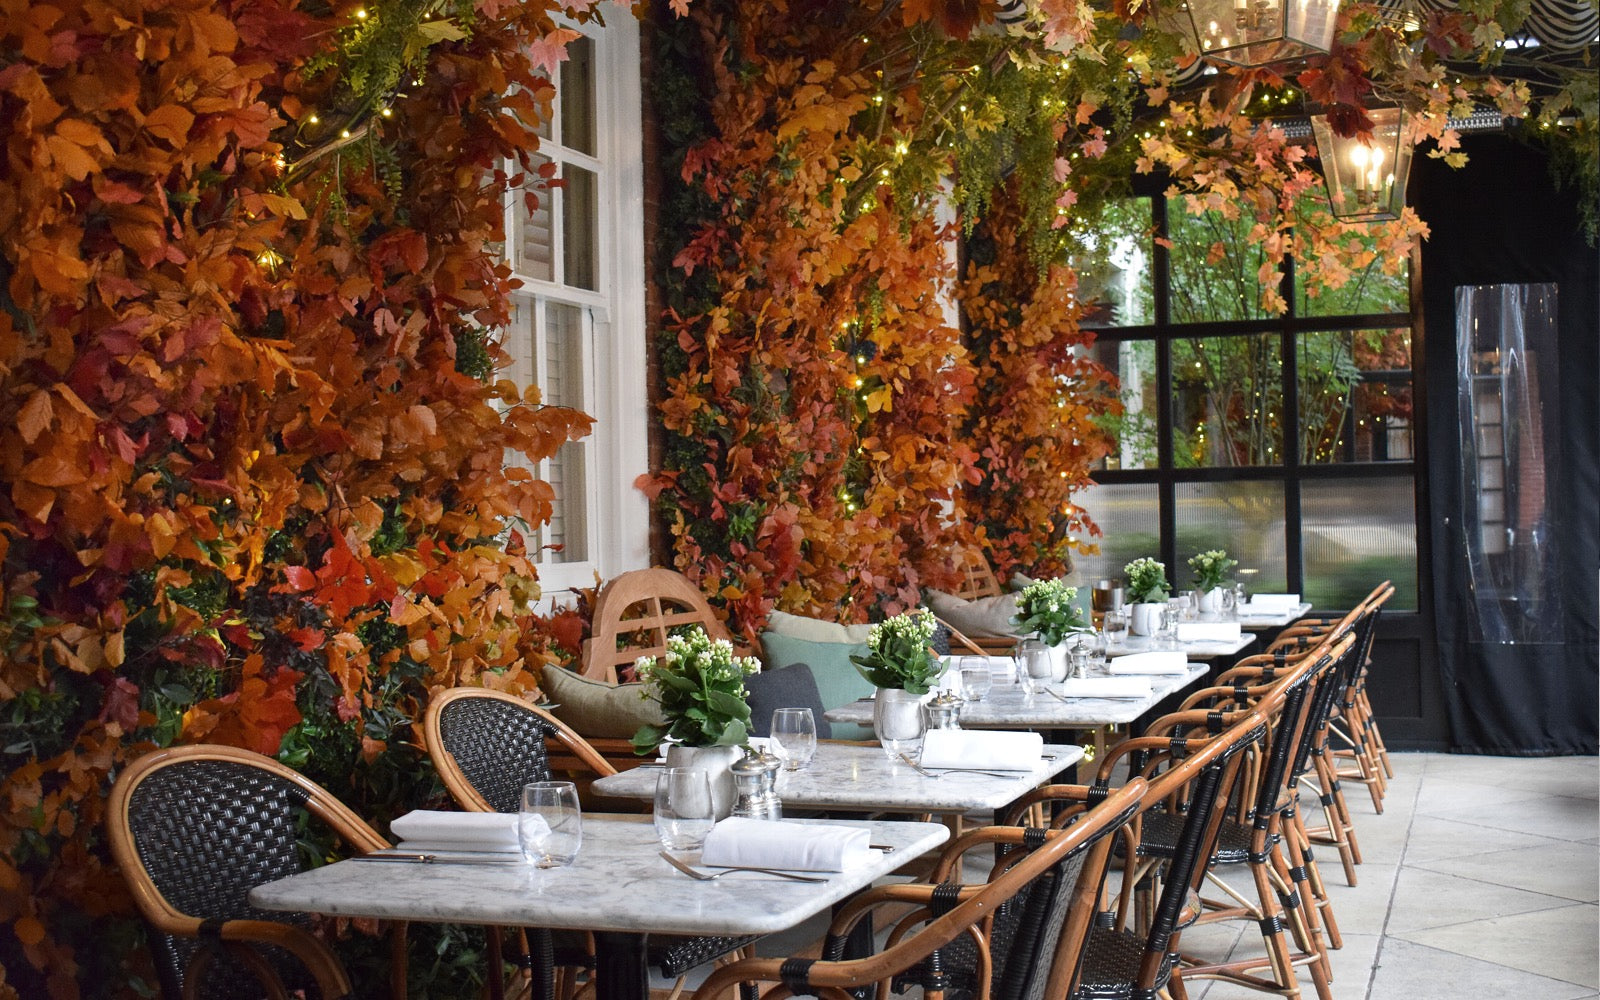 Celebrating Autumn at Dalloway Terrace